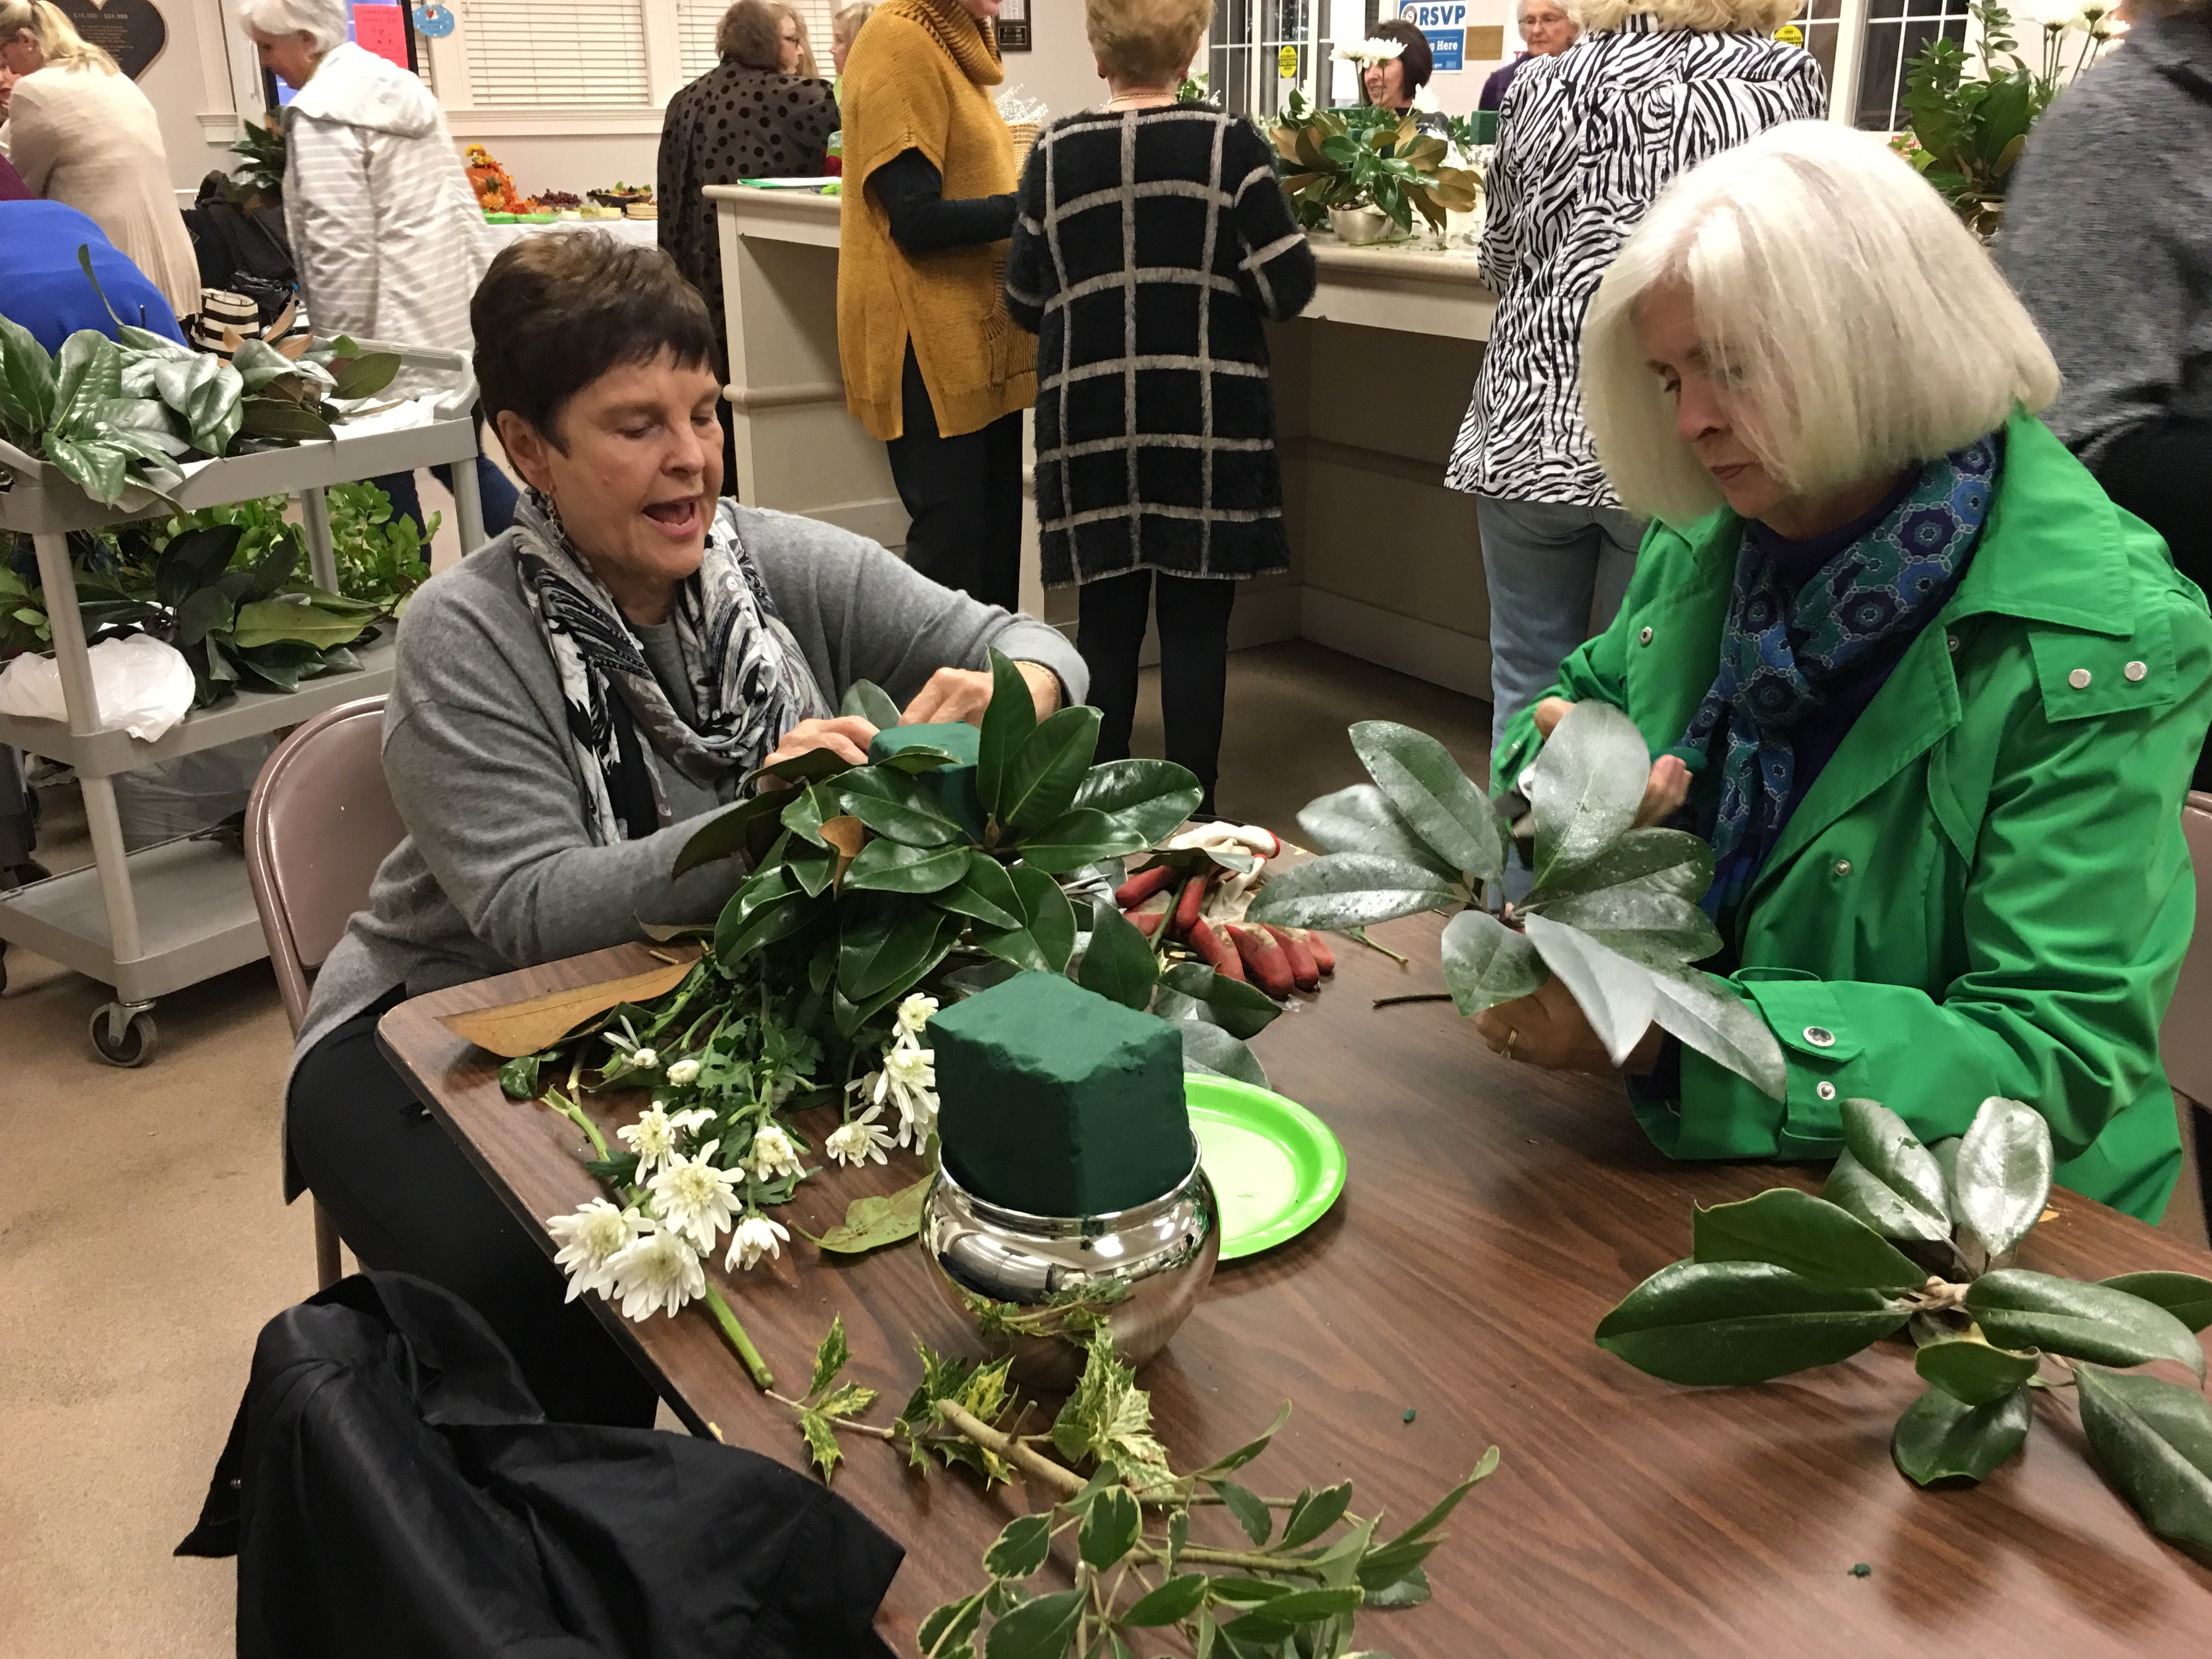 Thanks to the Lady Slipper Garden Club